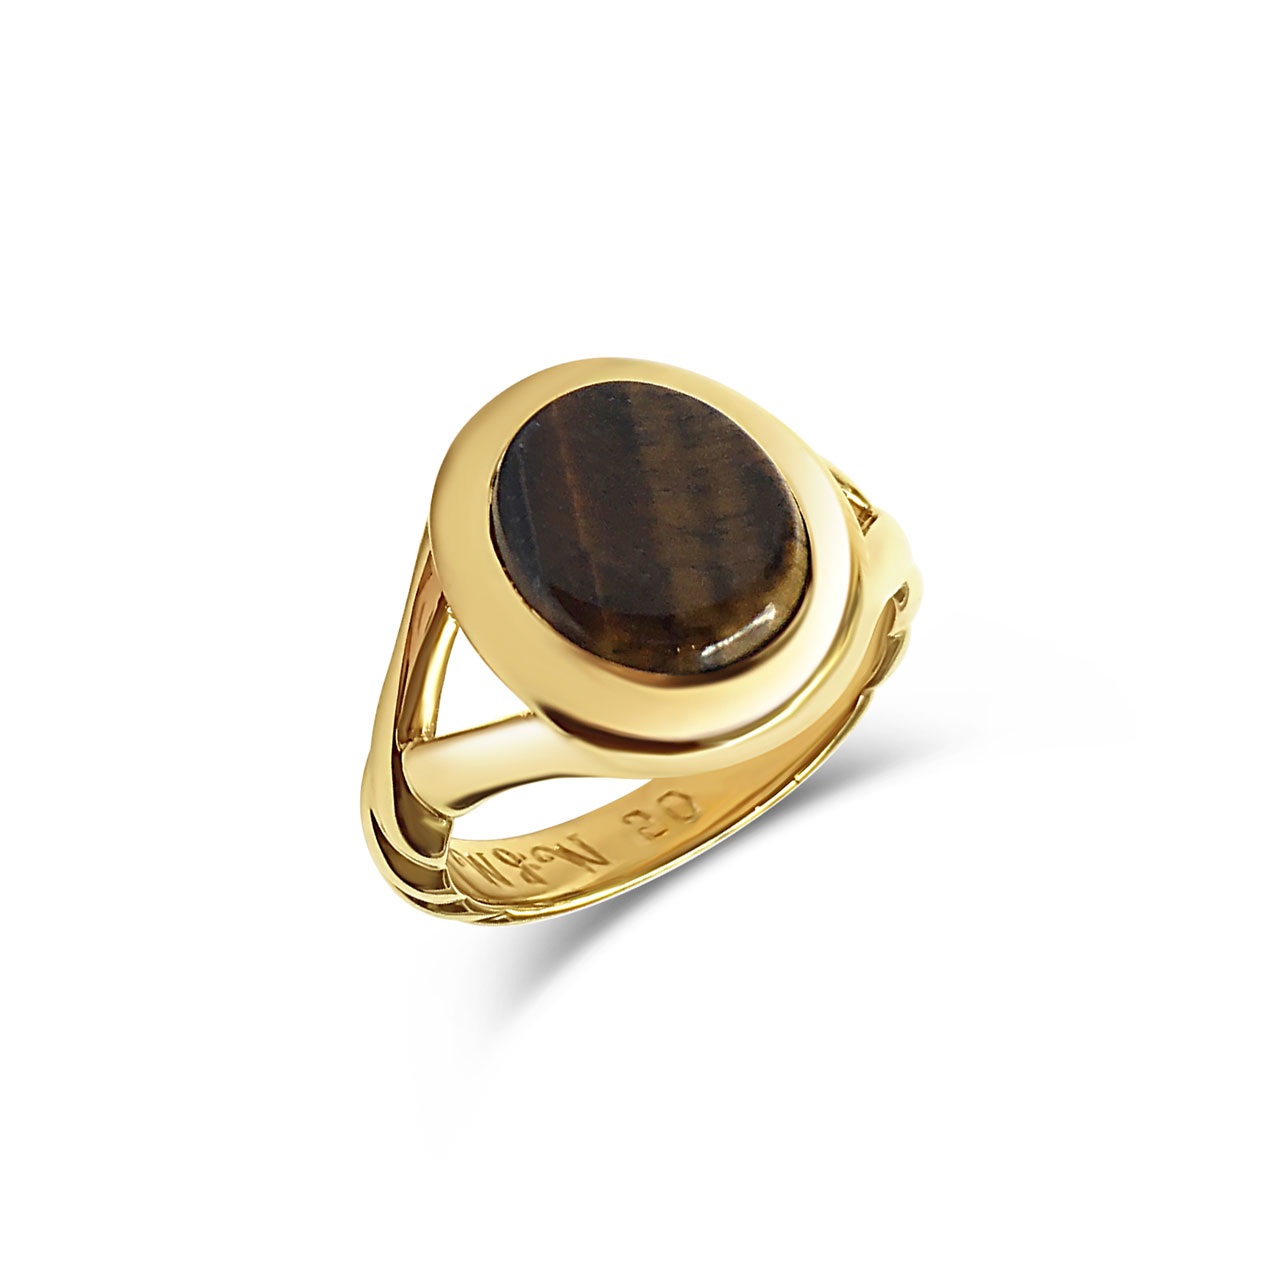 Tiger's eye and yellow gold signet ring